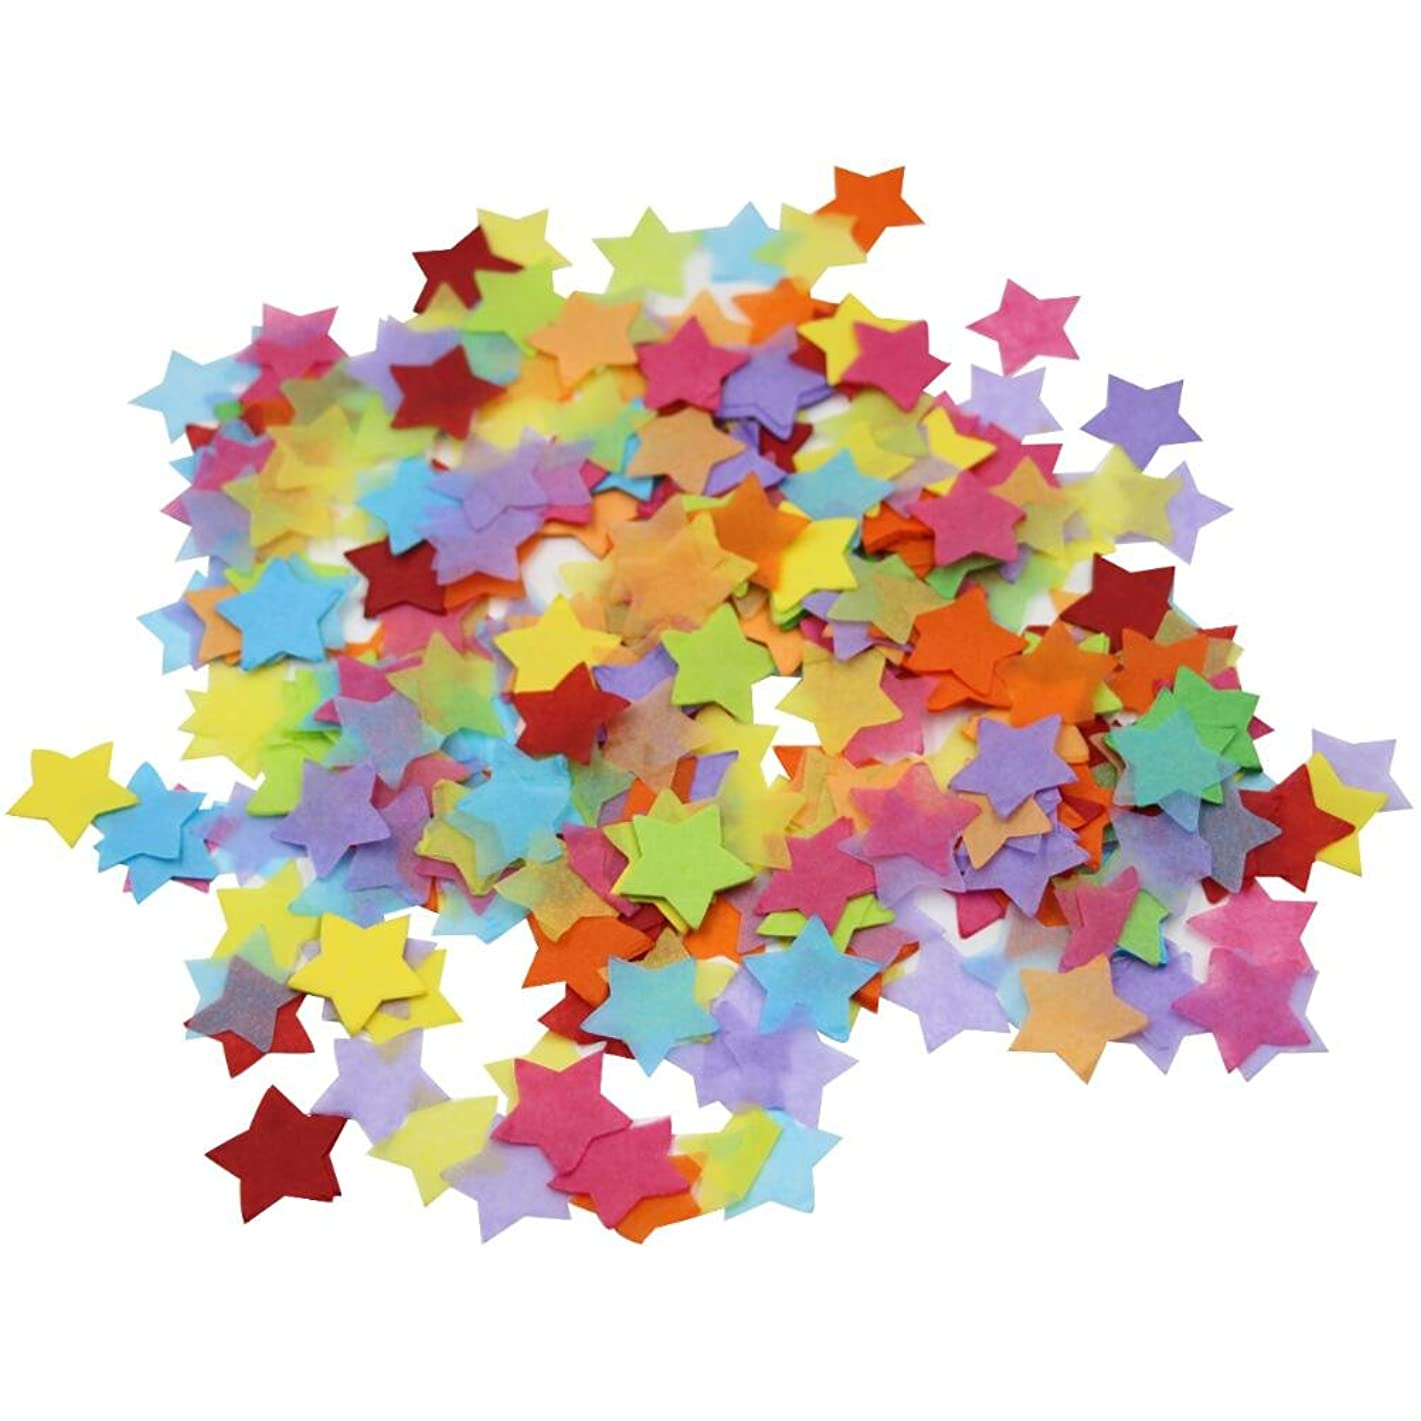 Mybbshower Rainbow Paper Star Confetti Table Scatter for Birthdat Party Pack of 4000 Pieces